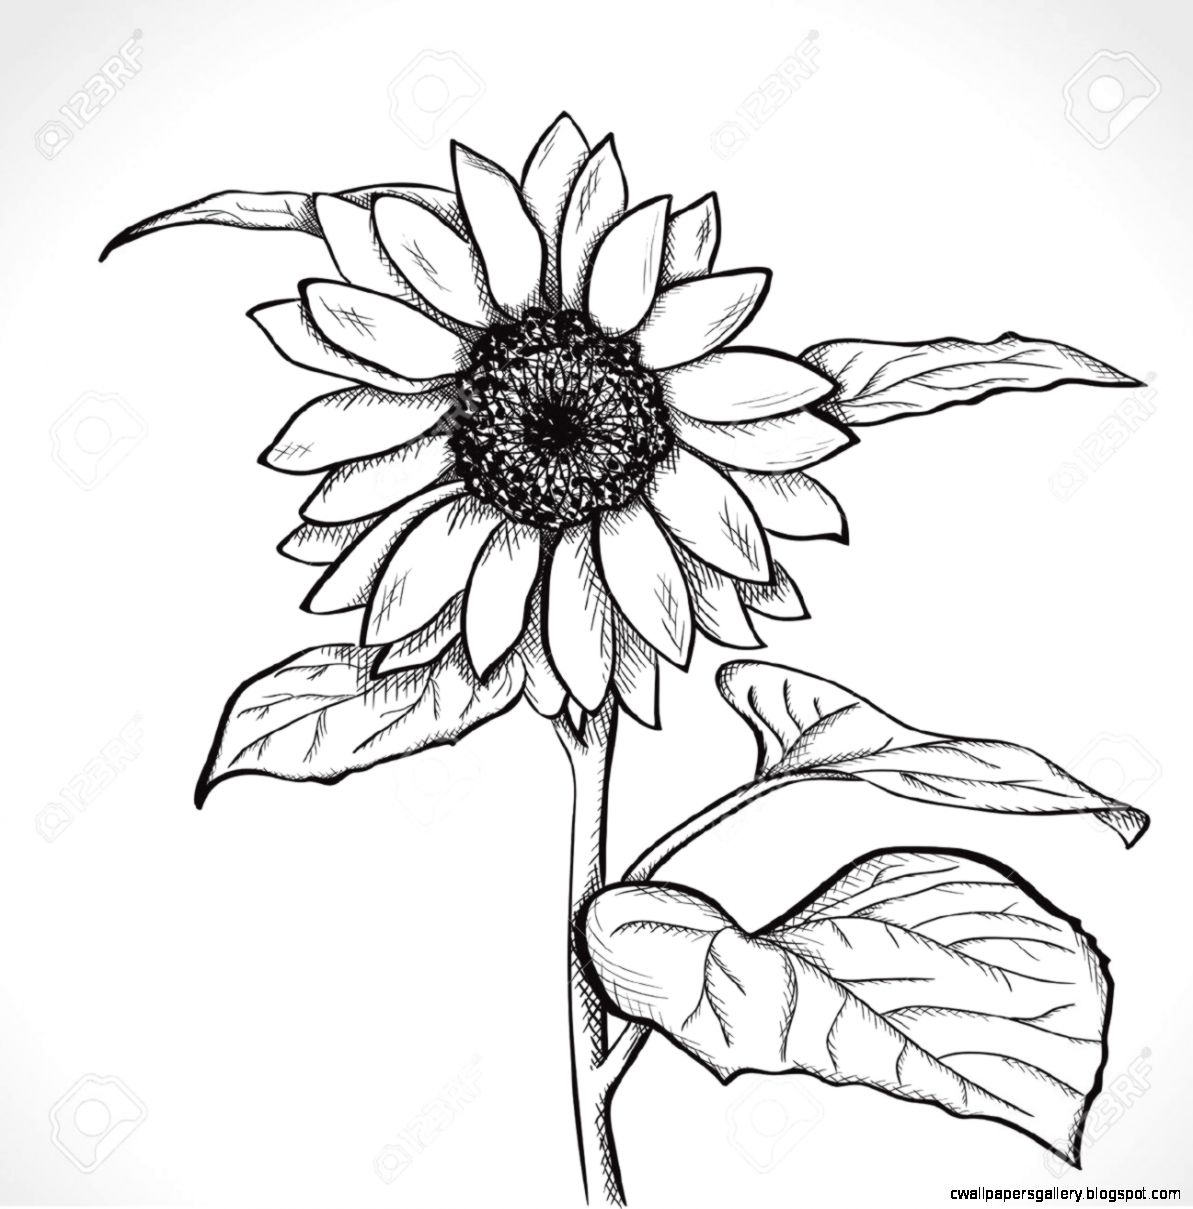 Sketch Sunflower Hand Drawn Ink Style Royalty Free Cliparts